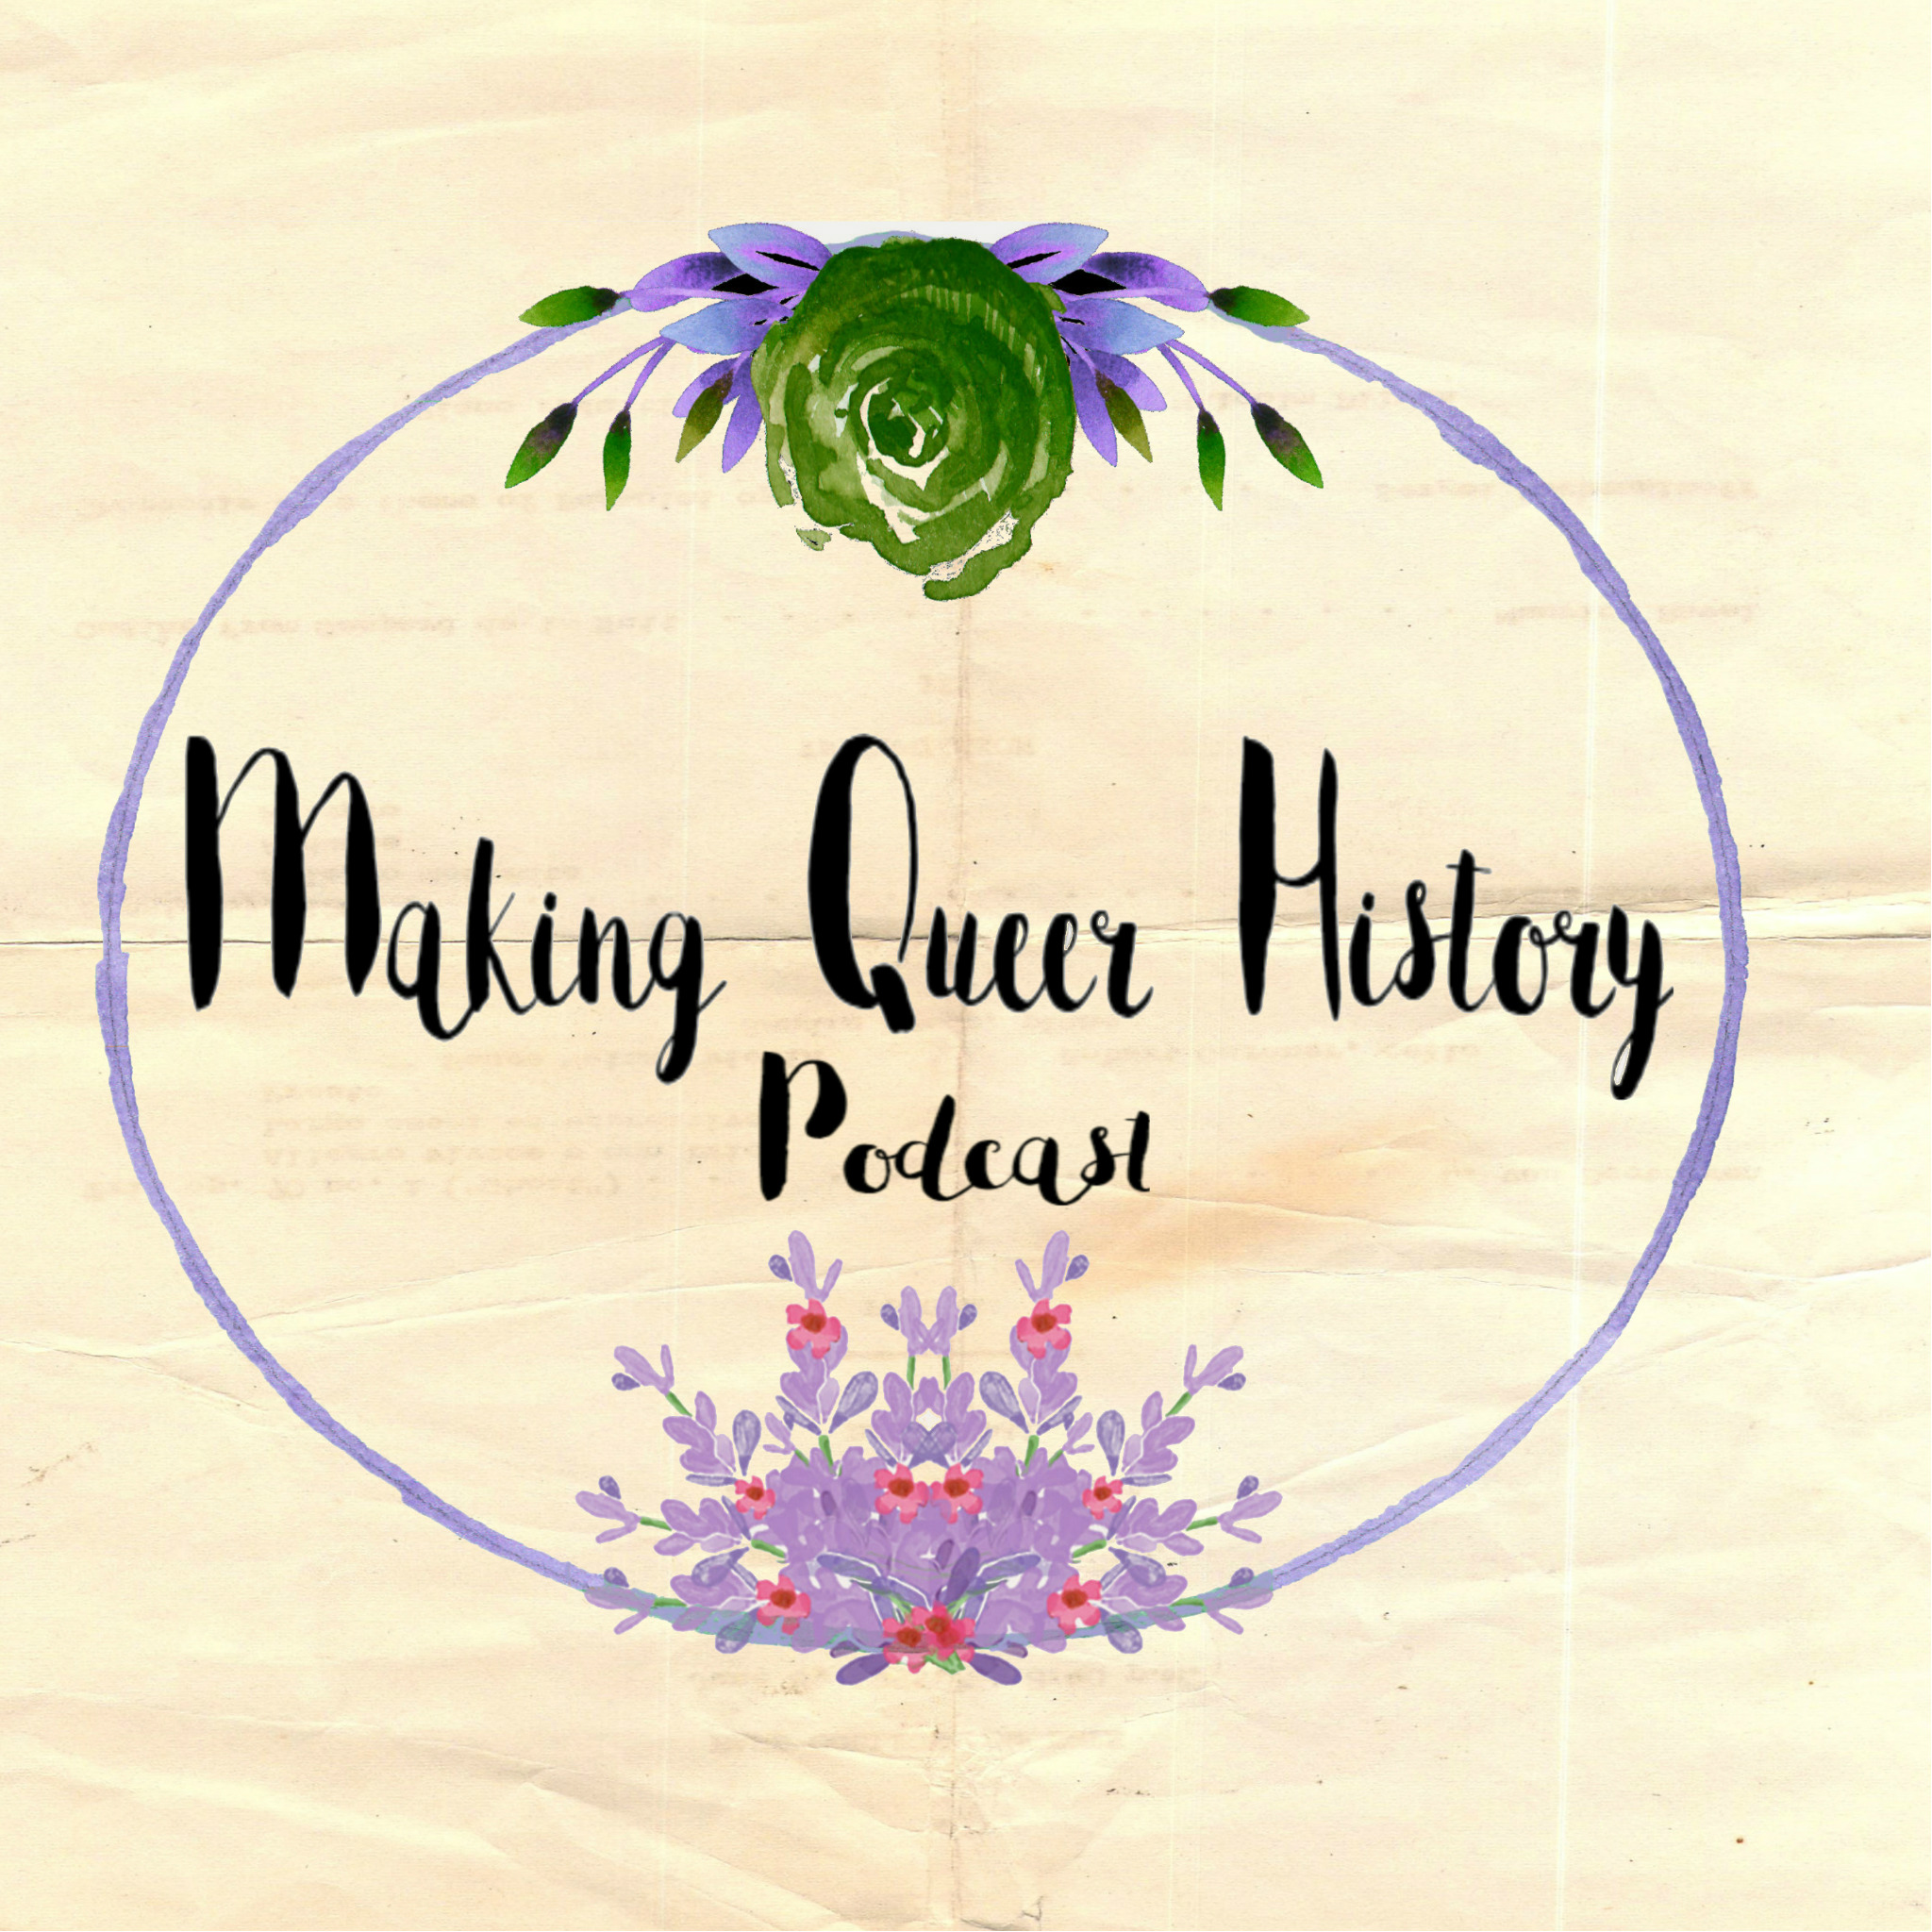 Making Queer History